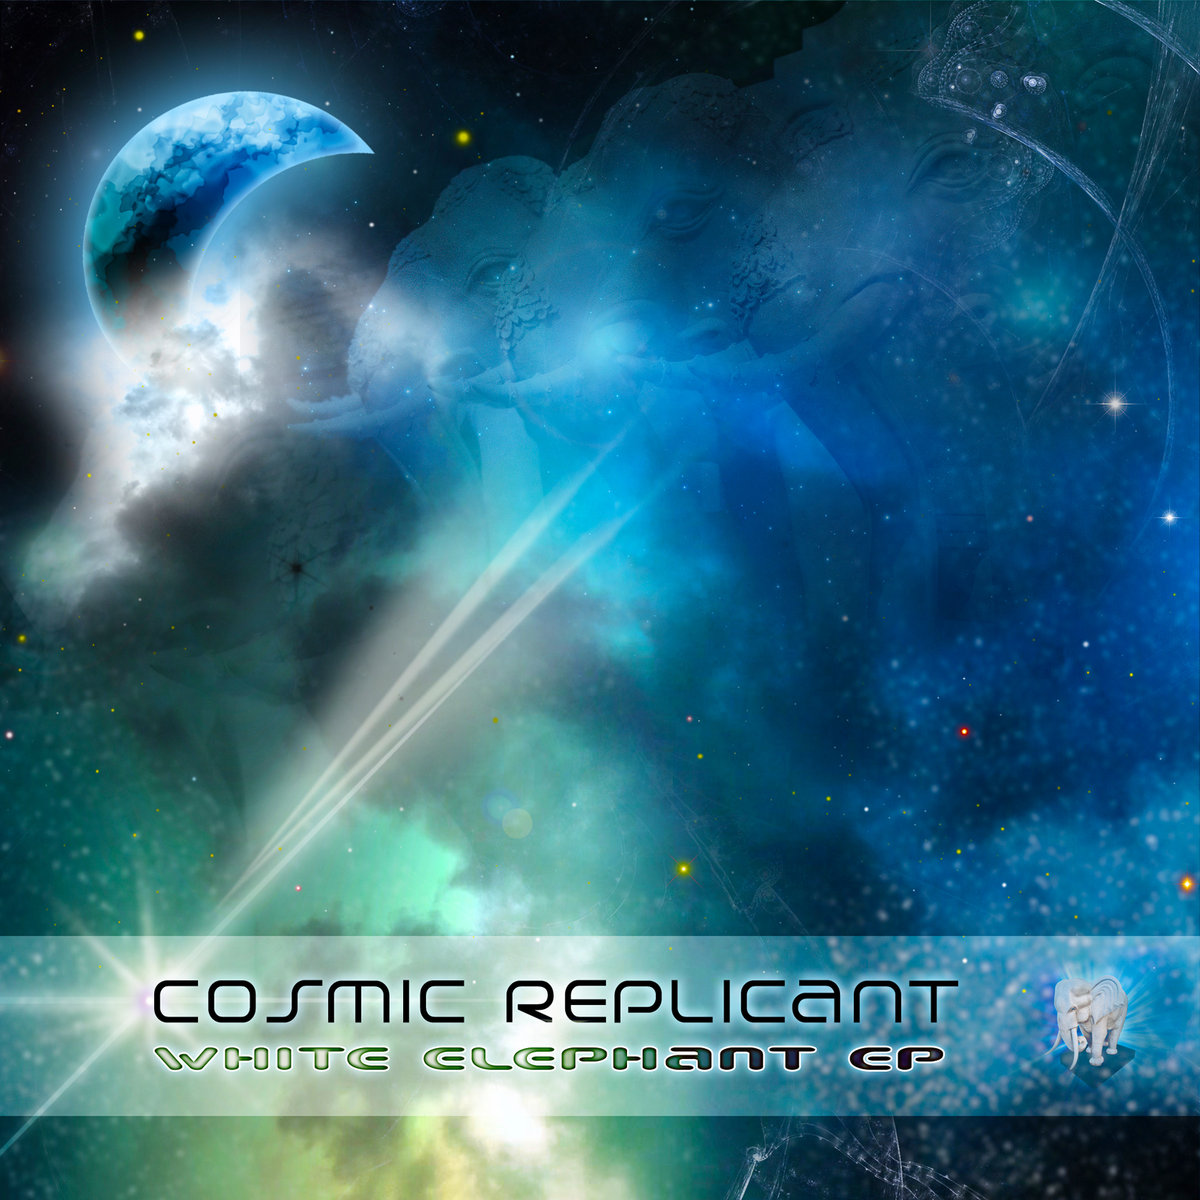 Cosmic Replicant - Sense of Life @ 'White Elephant EP' album (cosmic replicant, cosmic replicant free music)